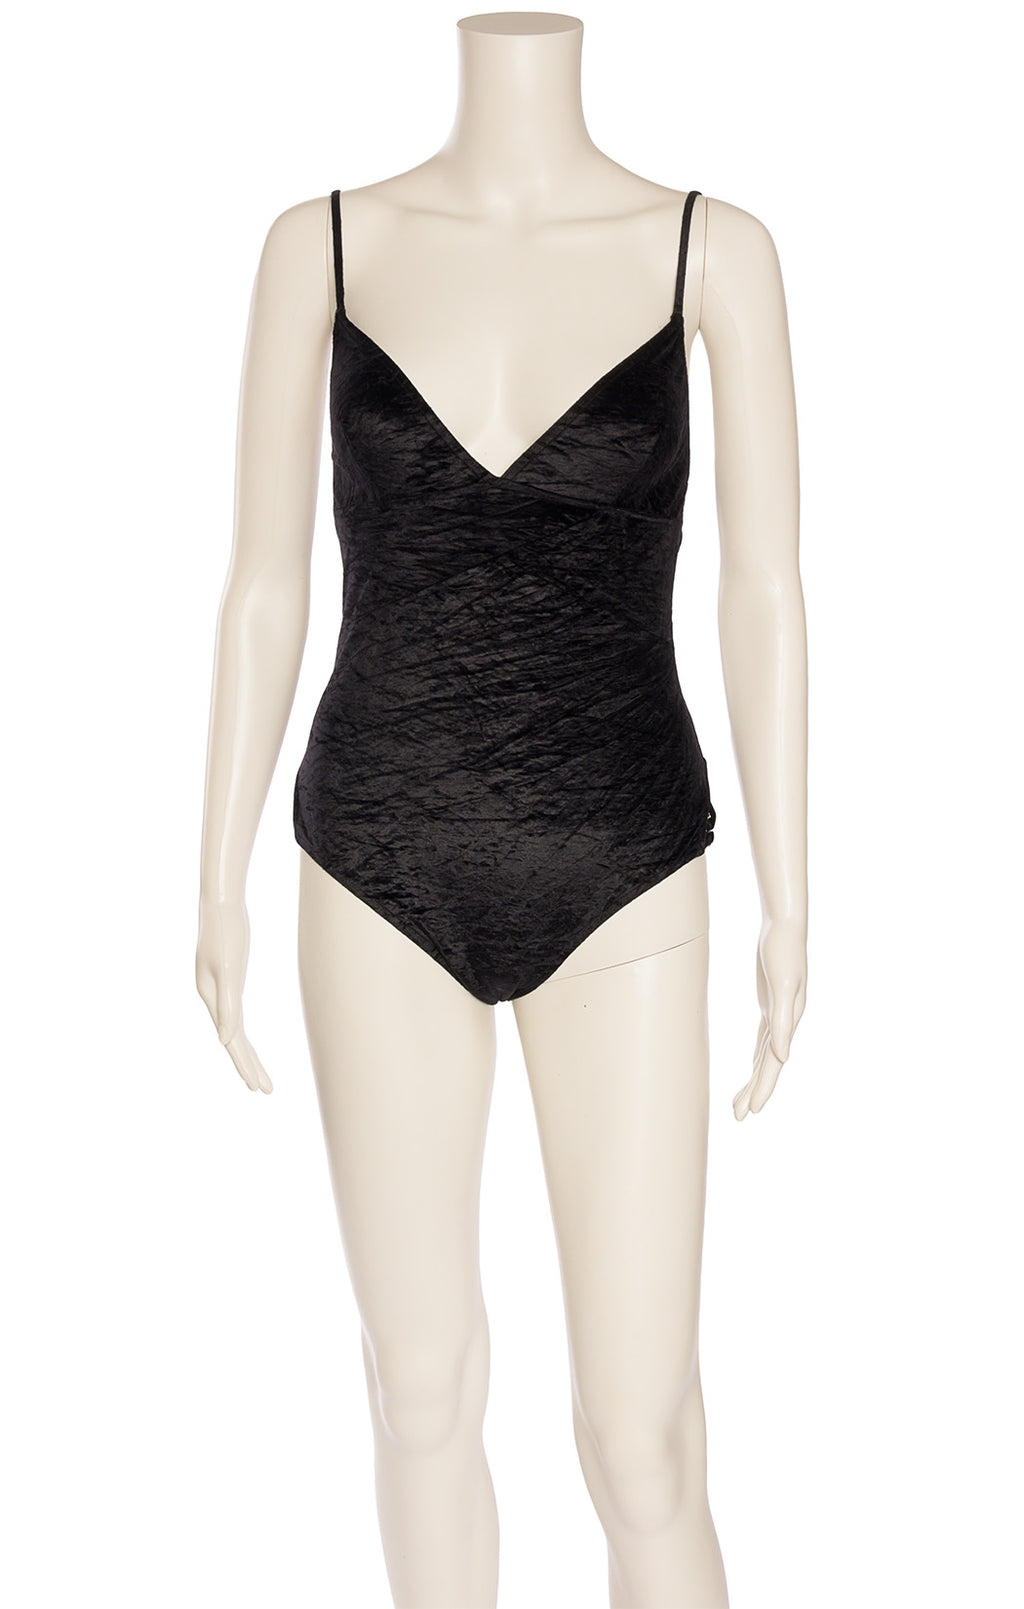 Black velvet like fabric one piece bathing suit with silver Dior logo on side